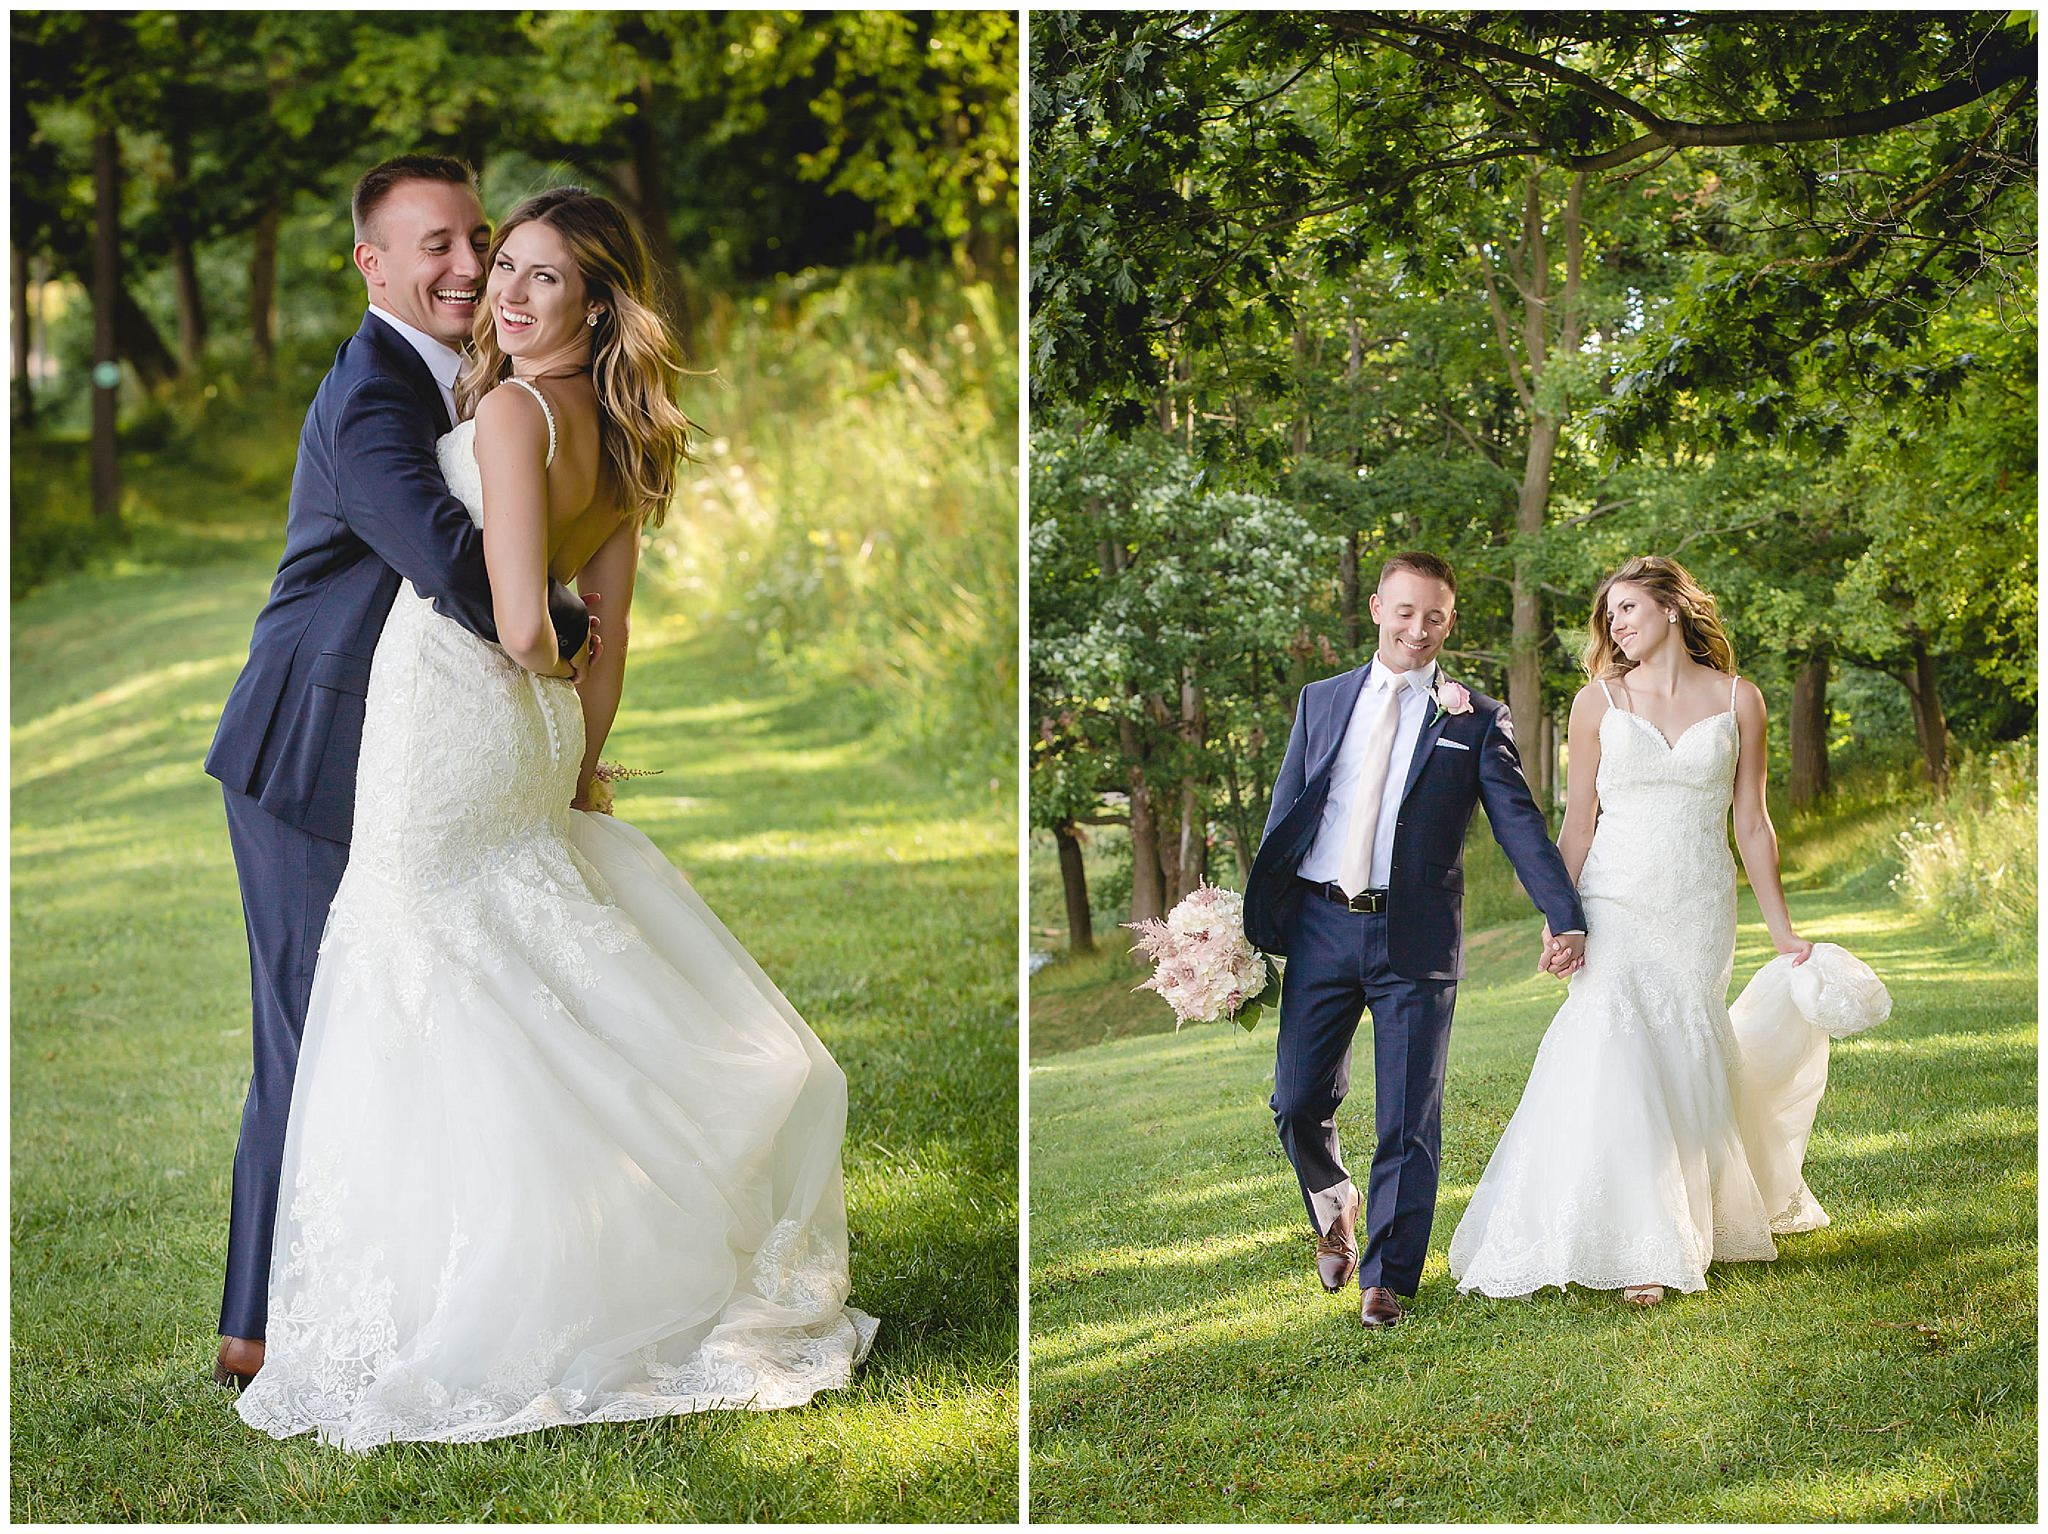 Bride and groom laugh and walk playfully after their wedding ceremony